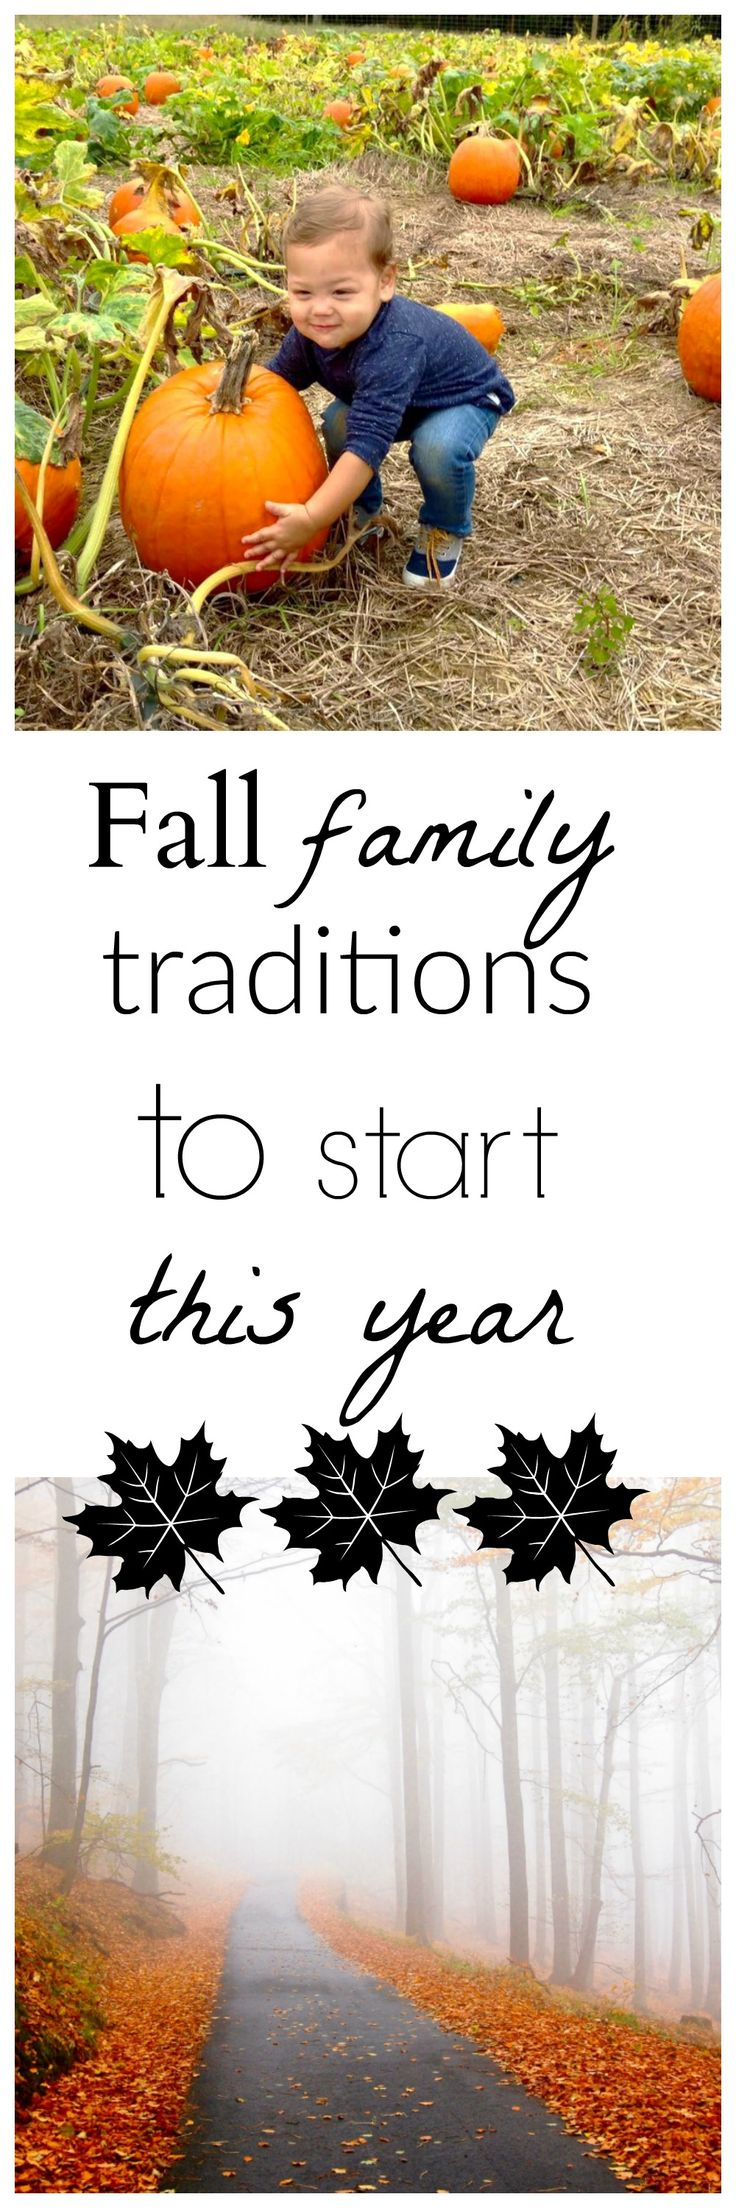 Display clipart family tradition Start ideas Halloween Check